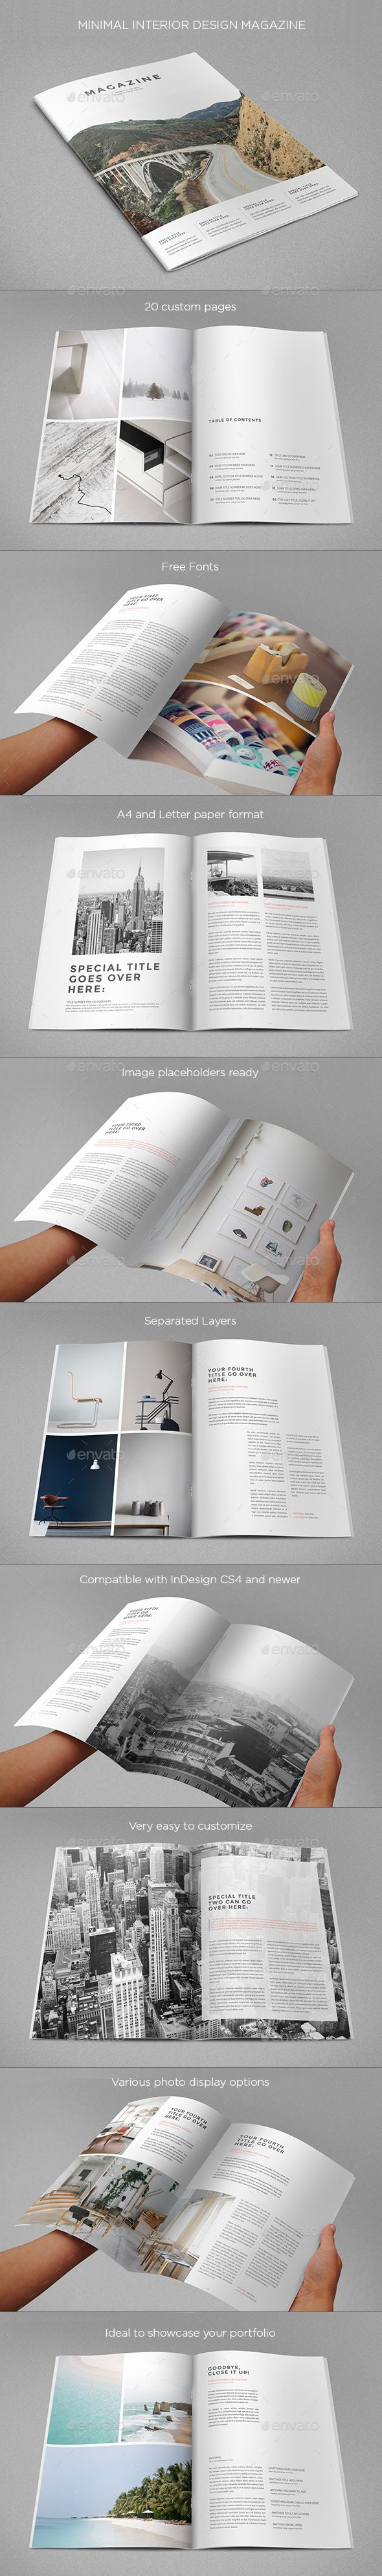 Minimal Interior Design Magazine Template InDesign INDD. Download here: https://graphicriver.net/item/minimal-interior-design-magazine/17284835?ref=ksioks